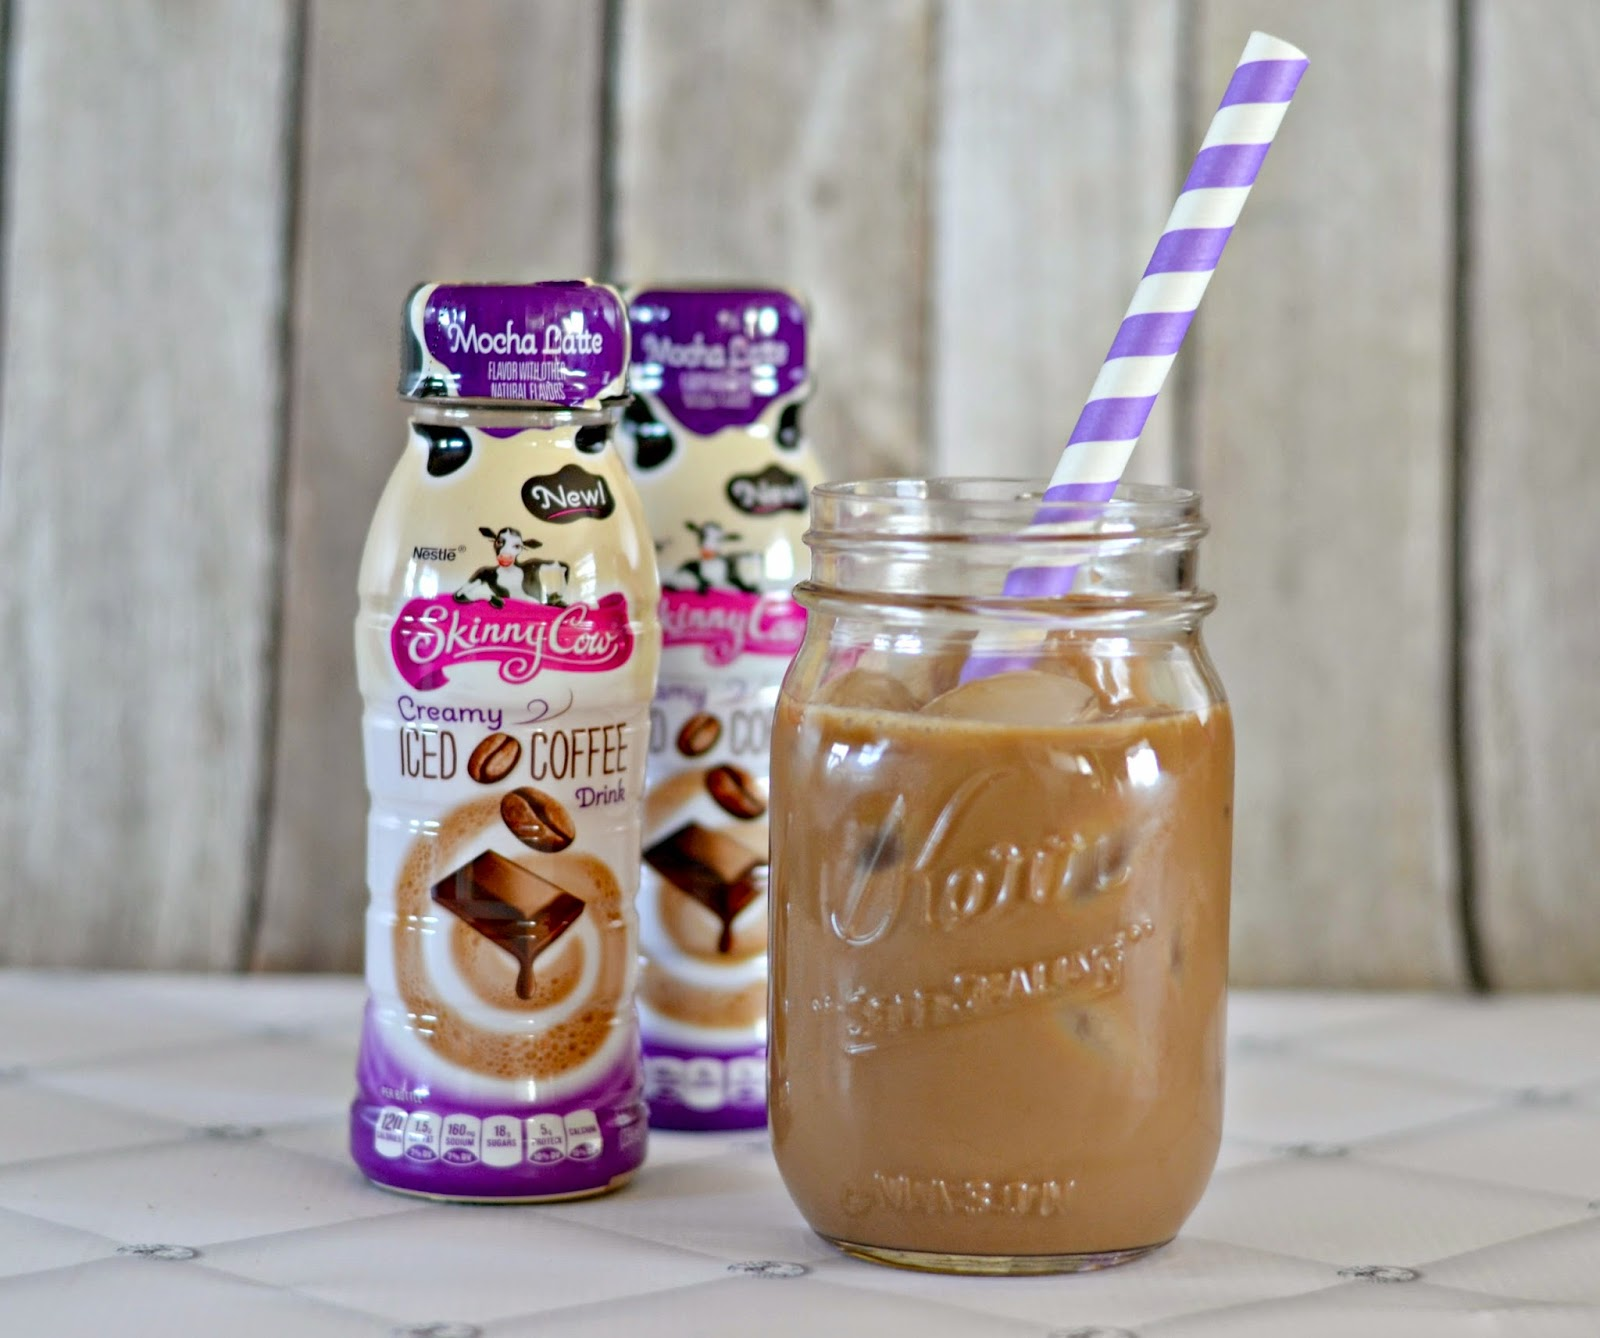 Find Balance.  Skinny Cow products.  Skinny Cow Latte.  Skinny Cow Candy.  Skinny Cow foods.